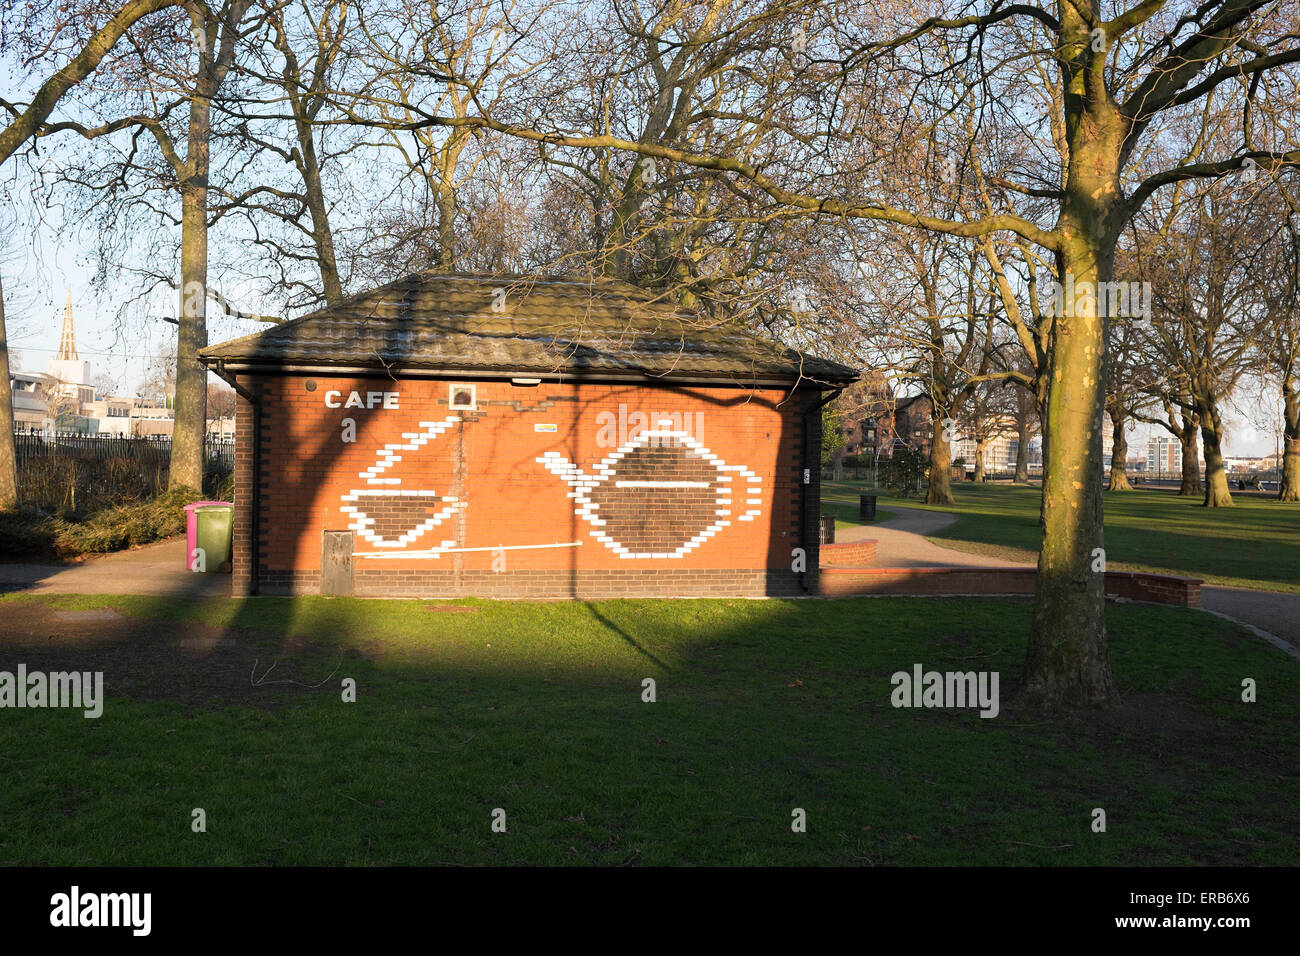 Old red brick building of the Island Gardens Cafe on the Isle of Dogs, London, UK. - Stock Image